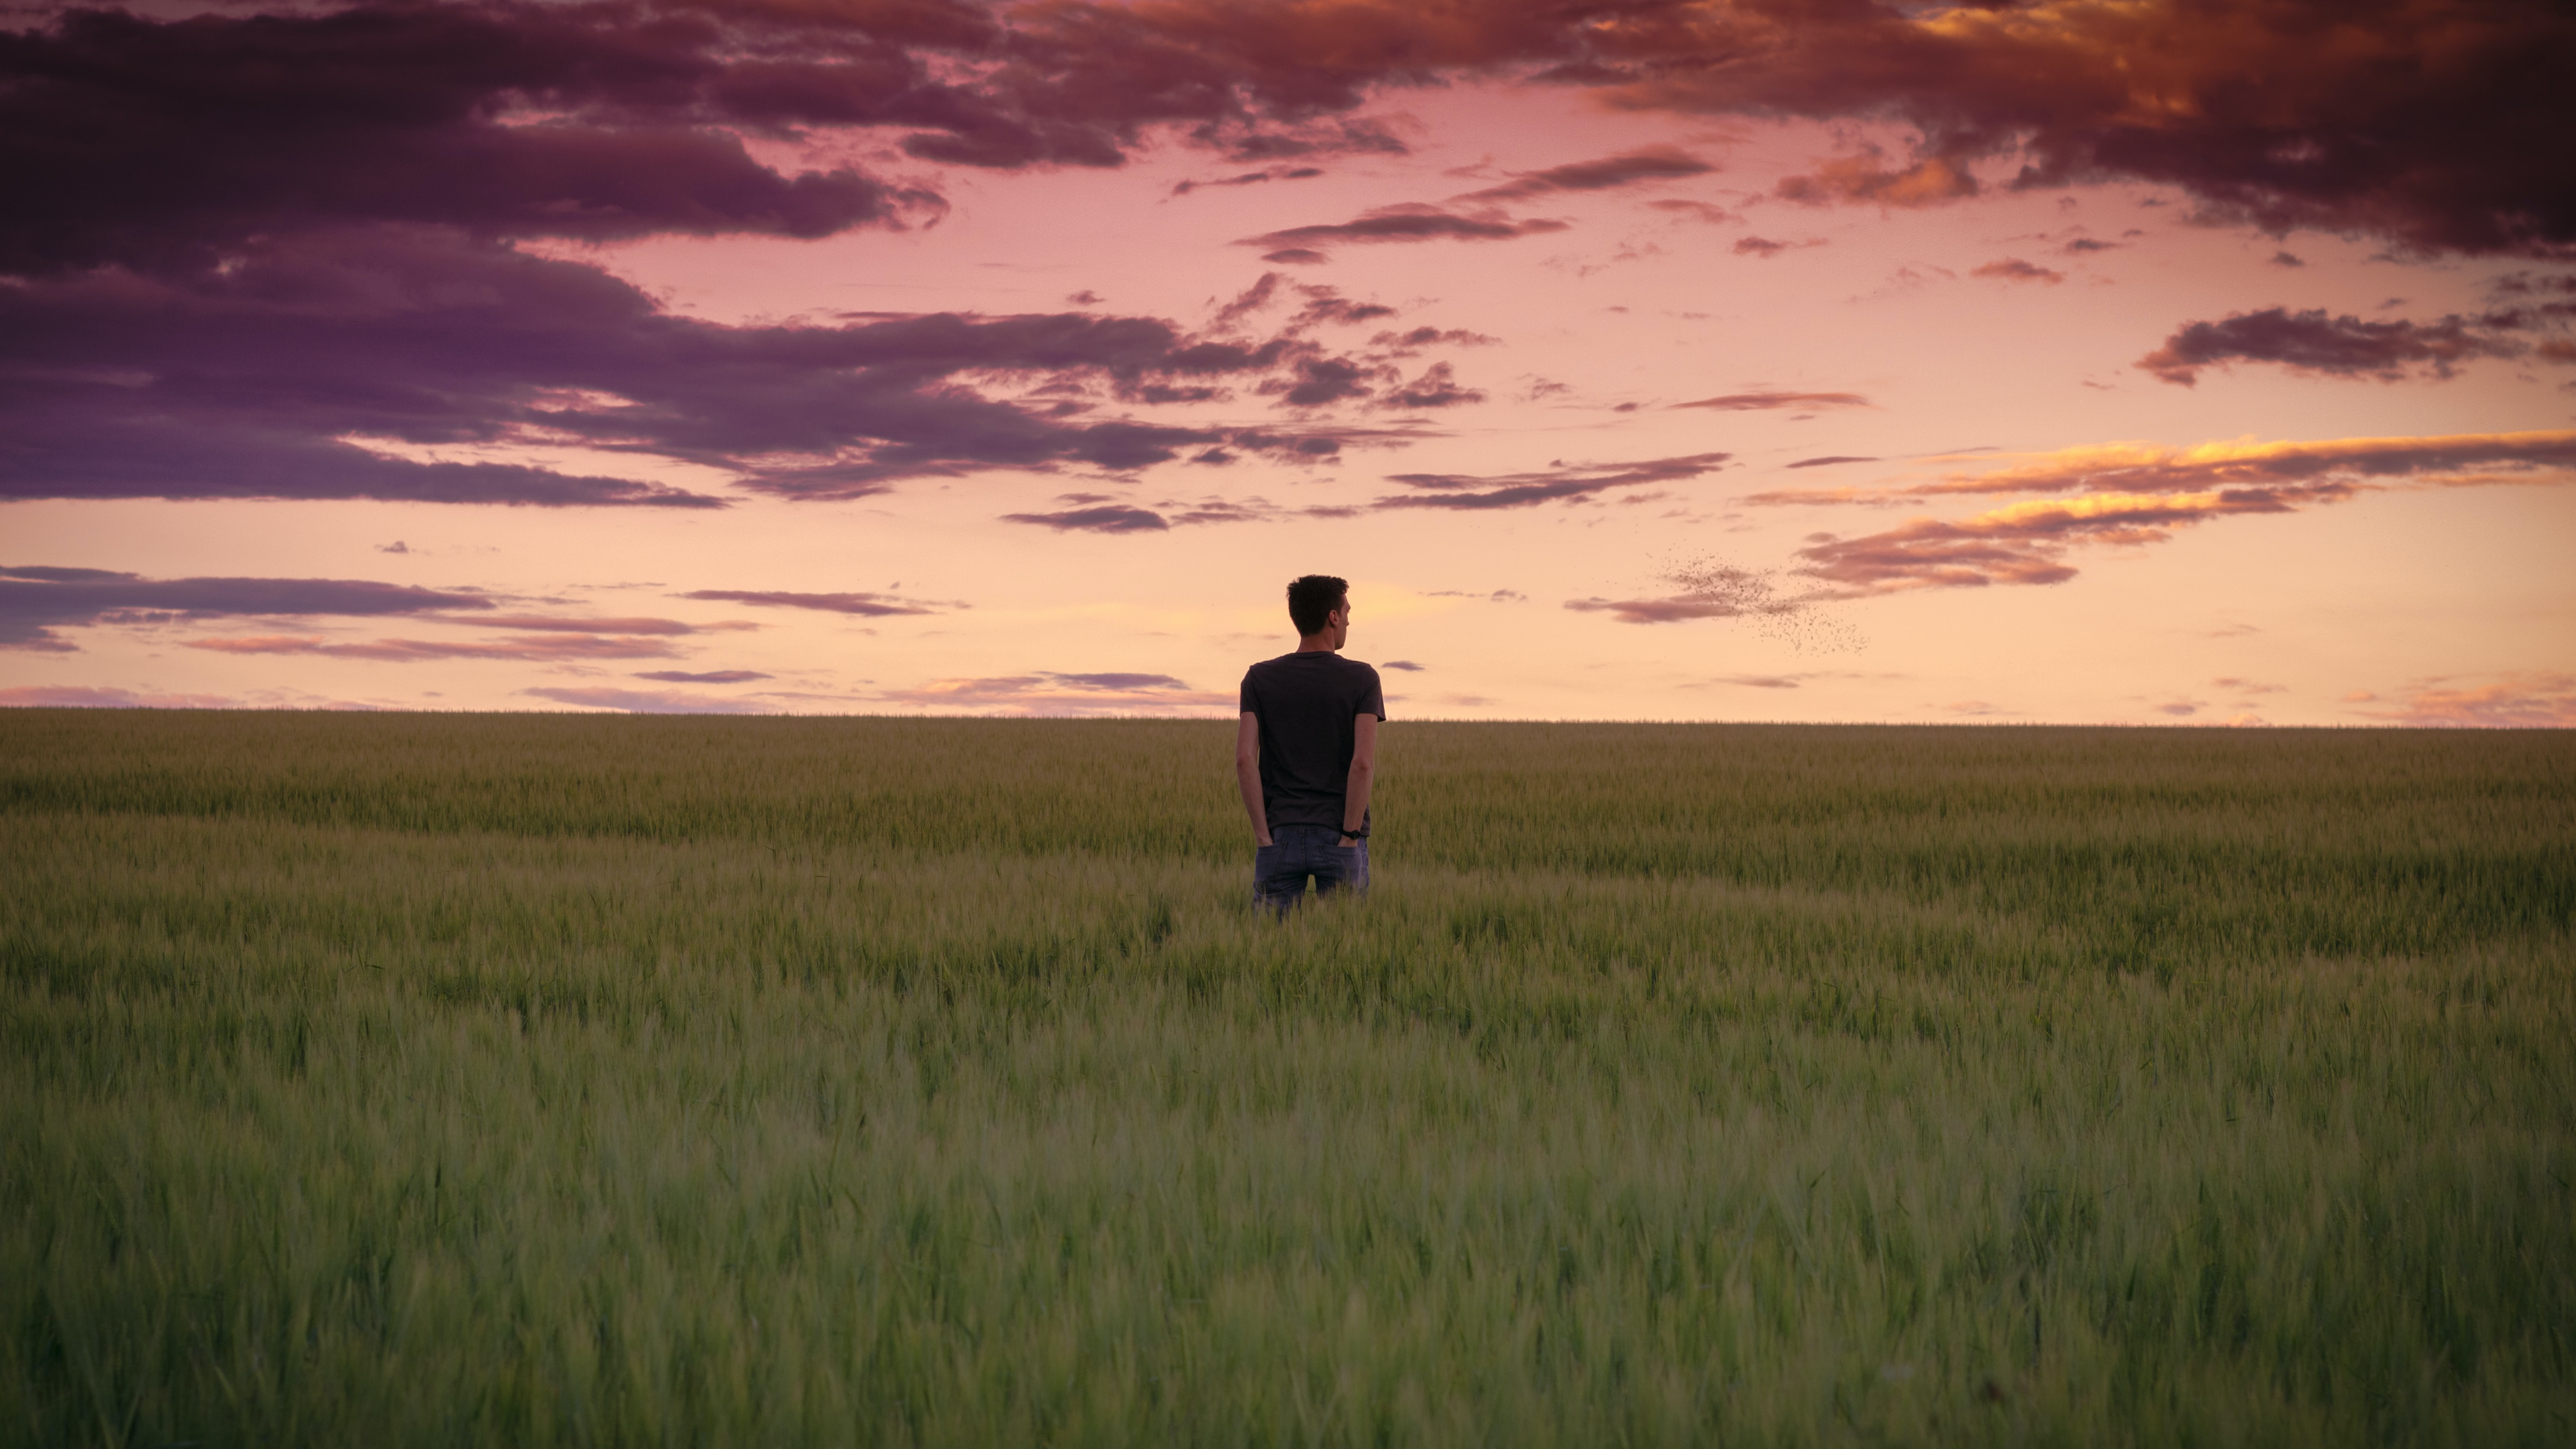 Man with hands in pocket standing in a field of grass, looking at the setting sun